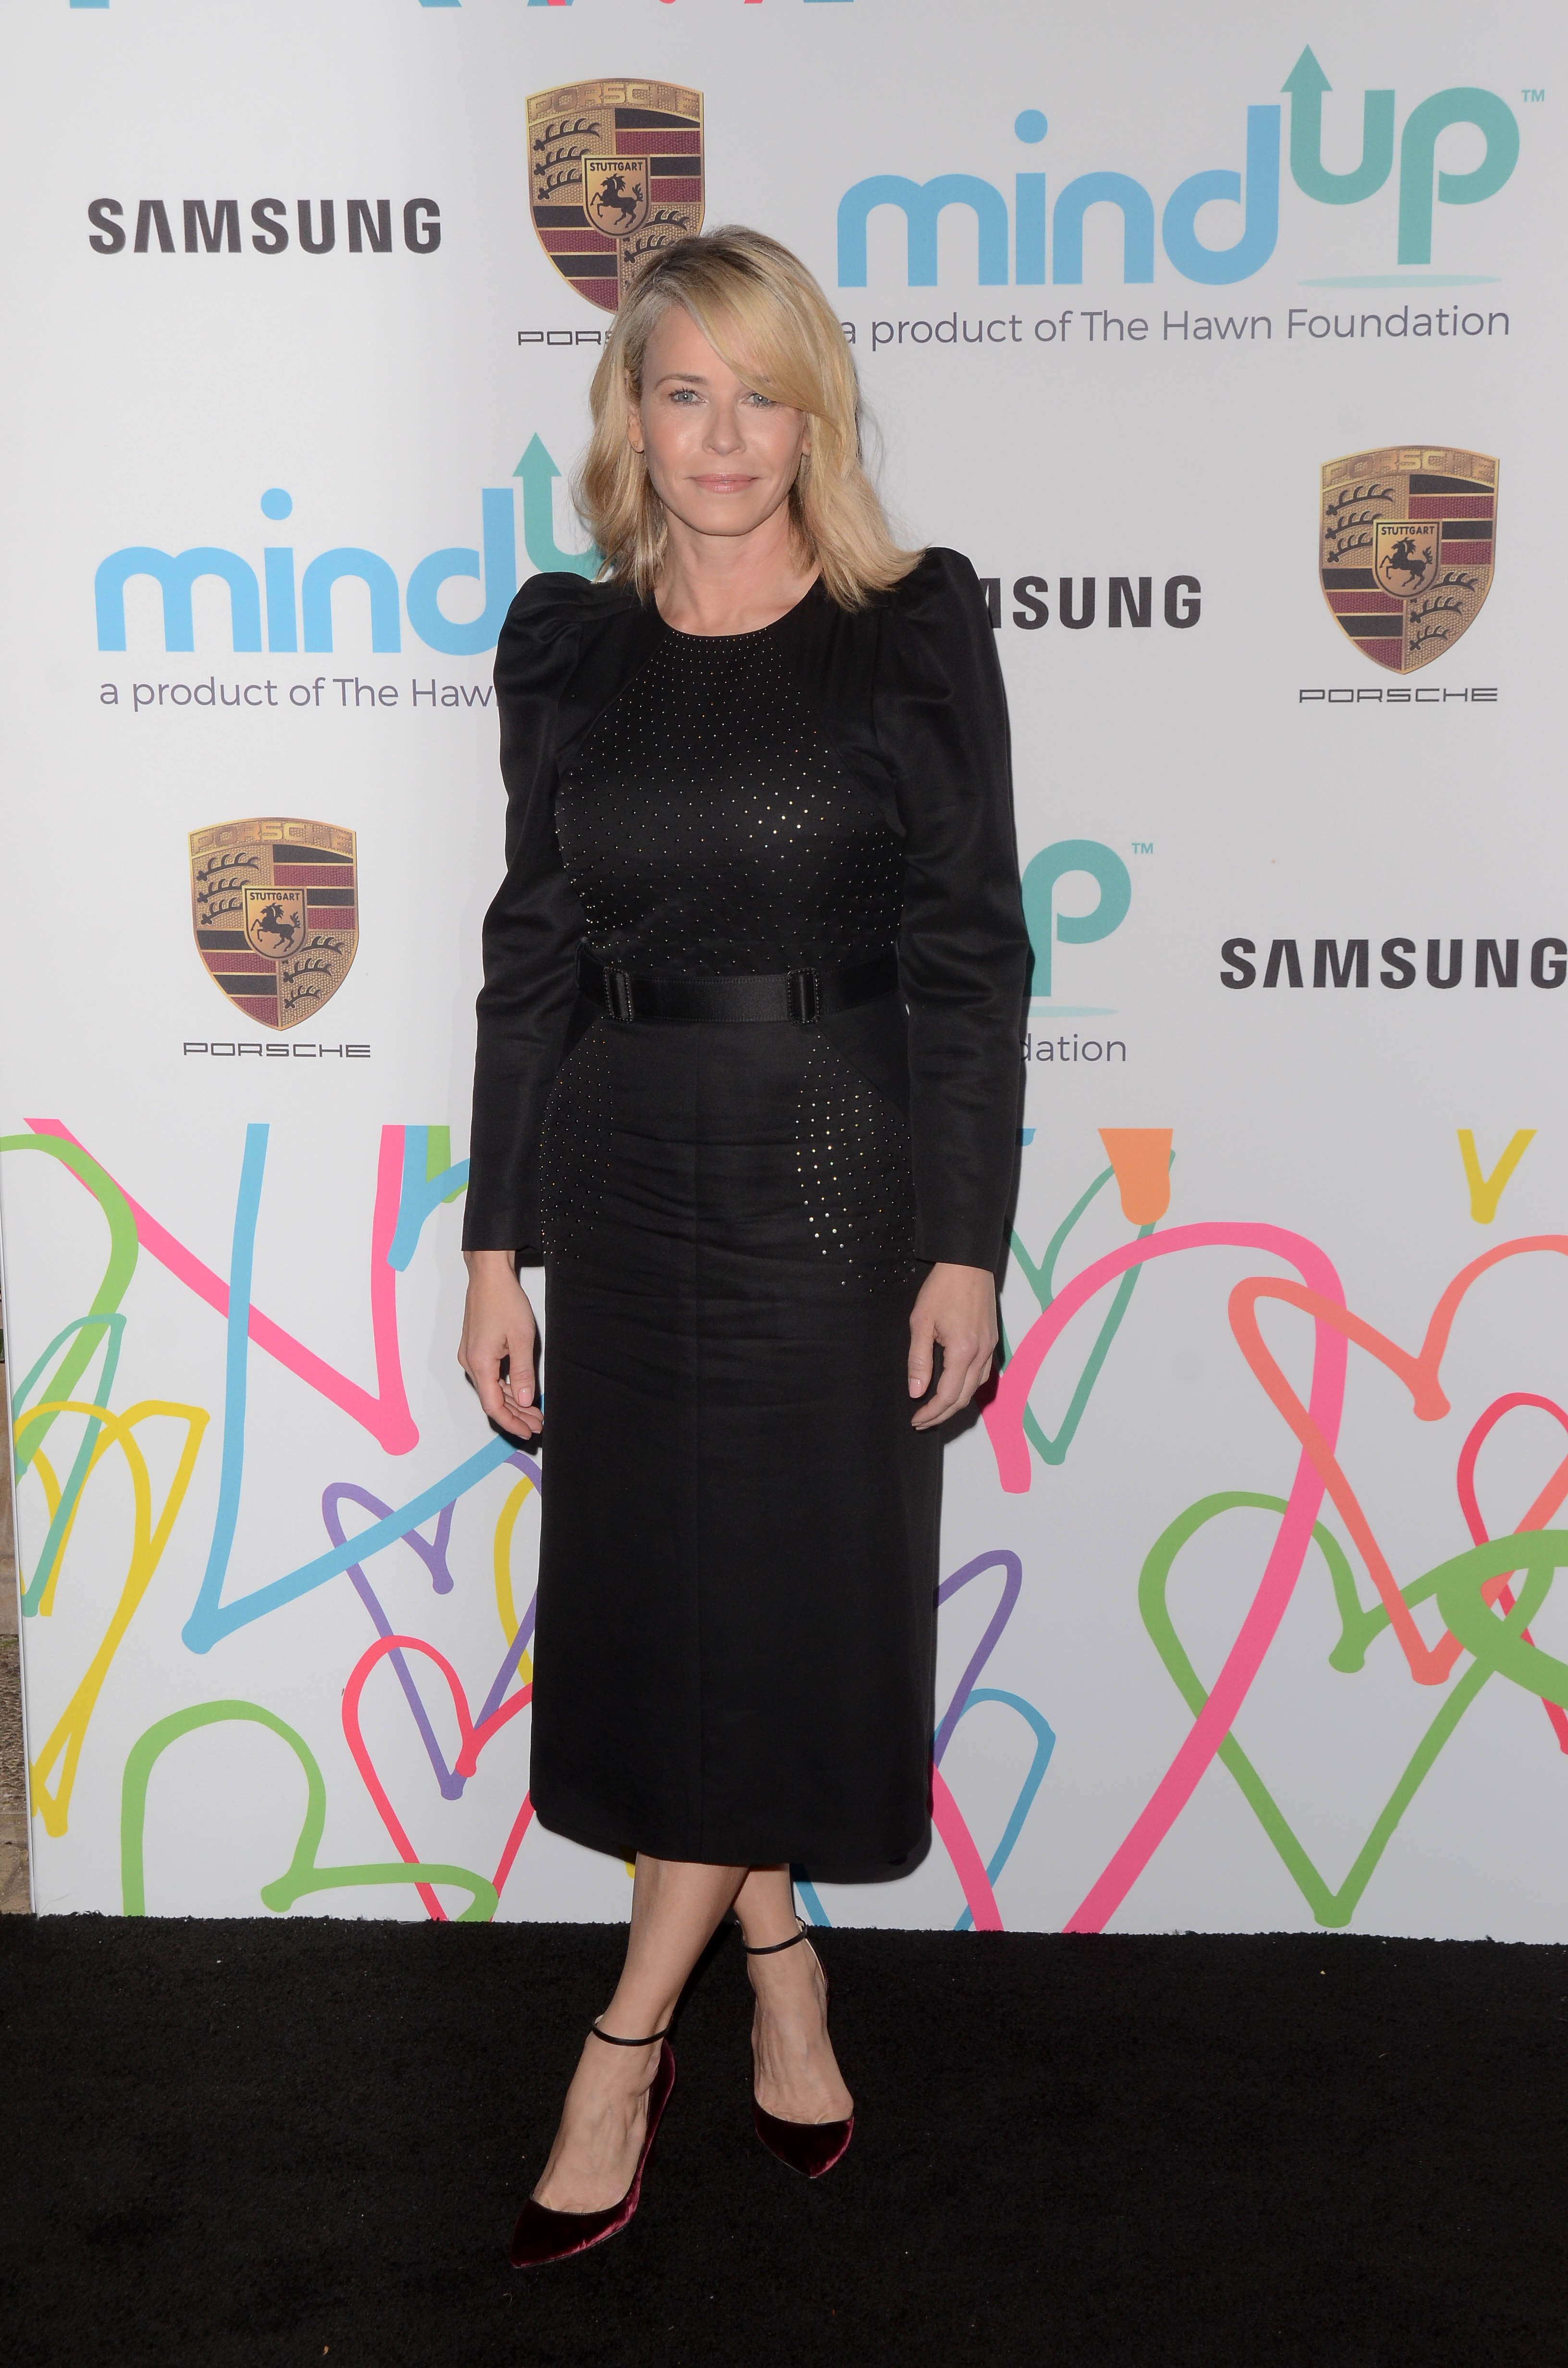 Chelsea Handler attends the Goldie's Love In For Kids event in Los Angeles on Nov. 3, 2017.